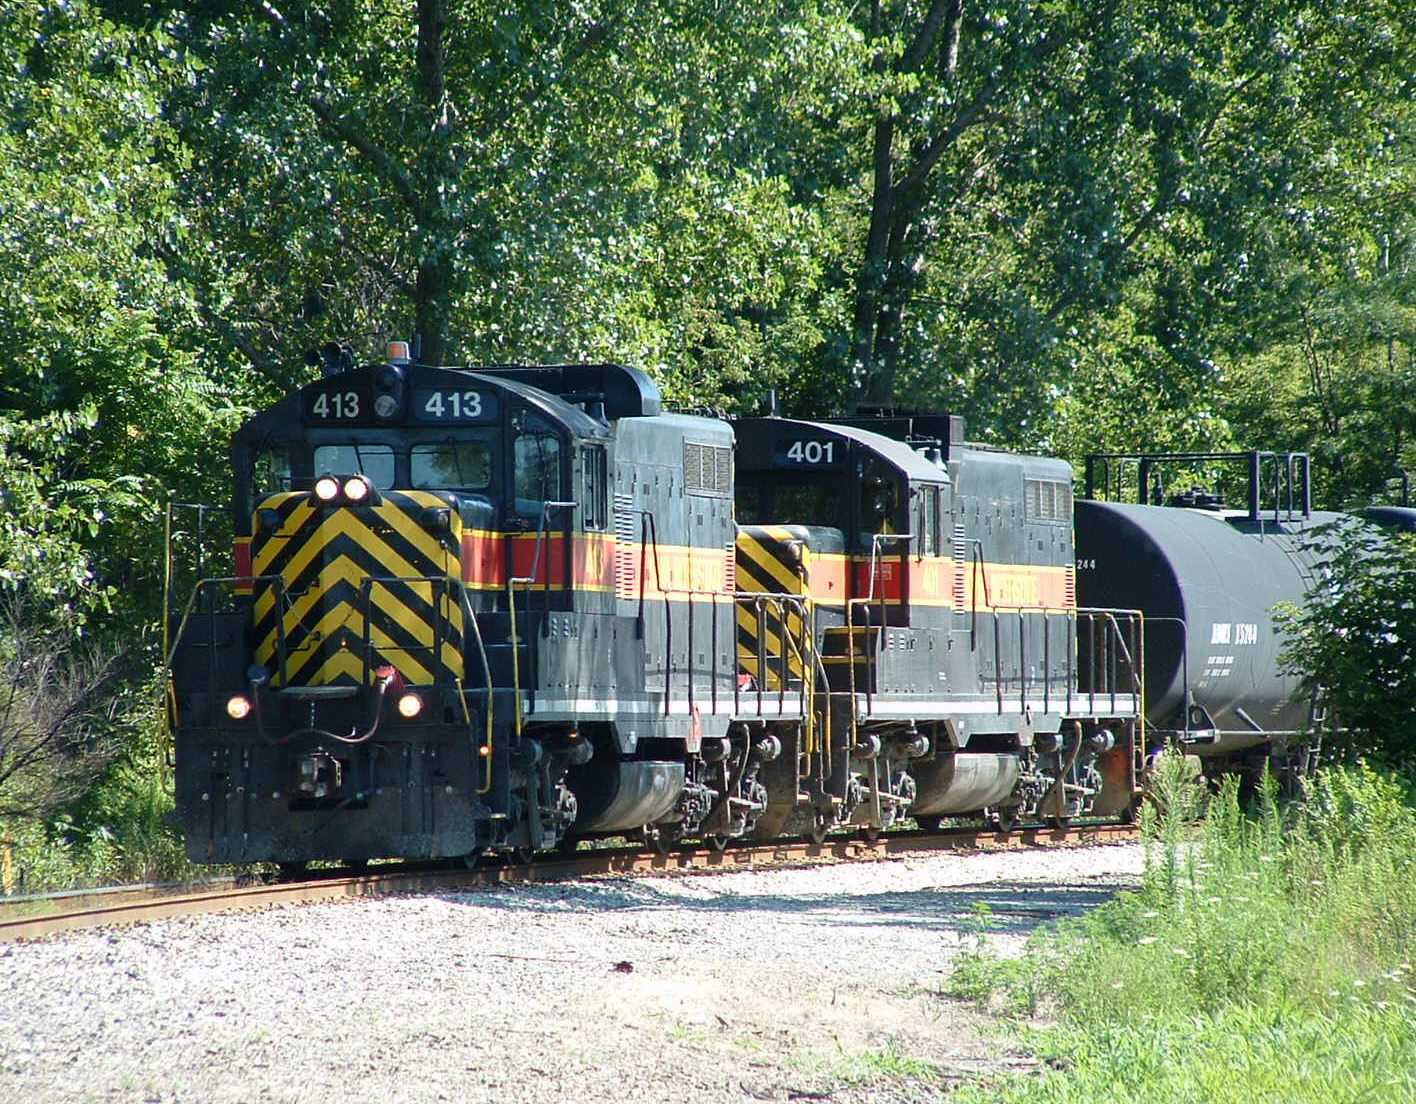 IAIS 413 leads 401 on BISW-06, Blue Island, IL 08/06/04